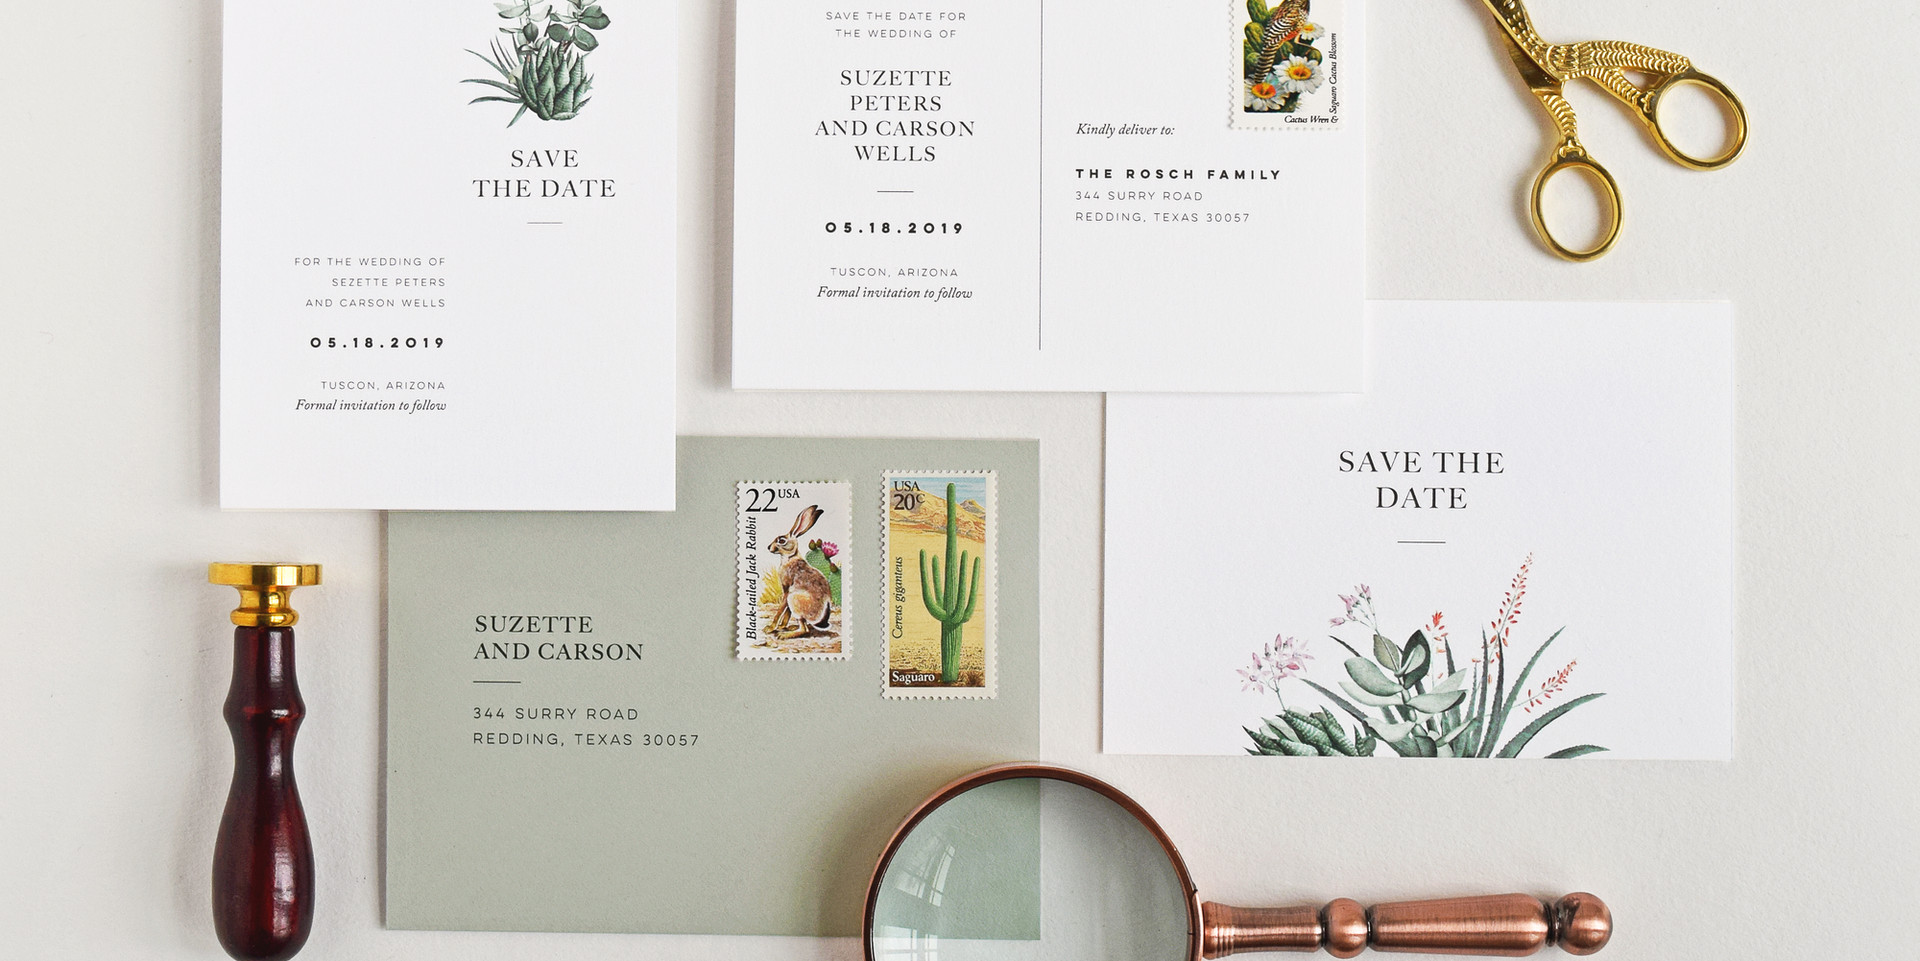 Suzette save the date card and save the date postcard